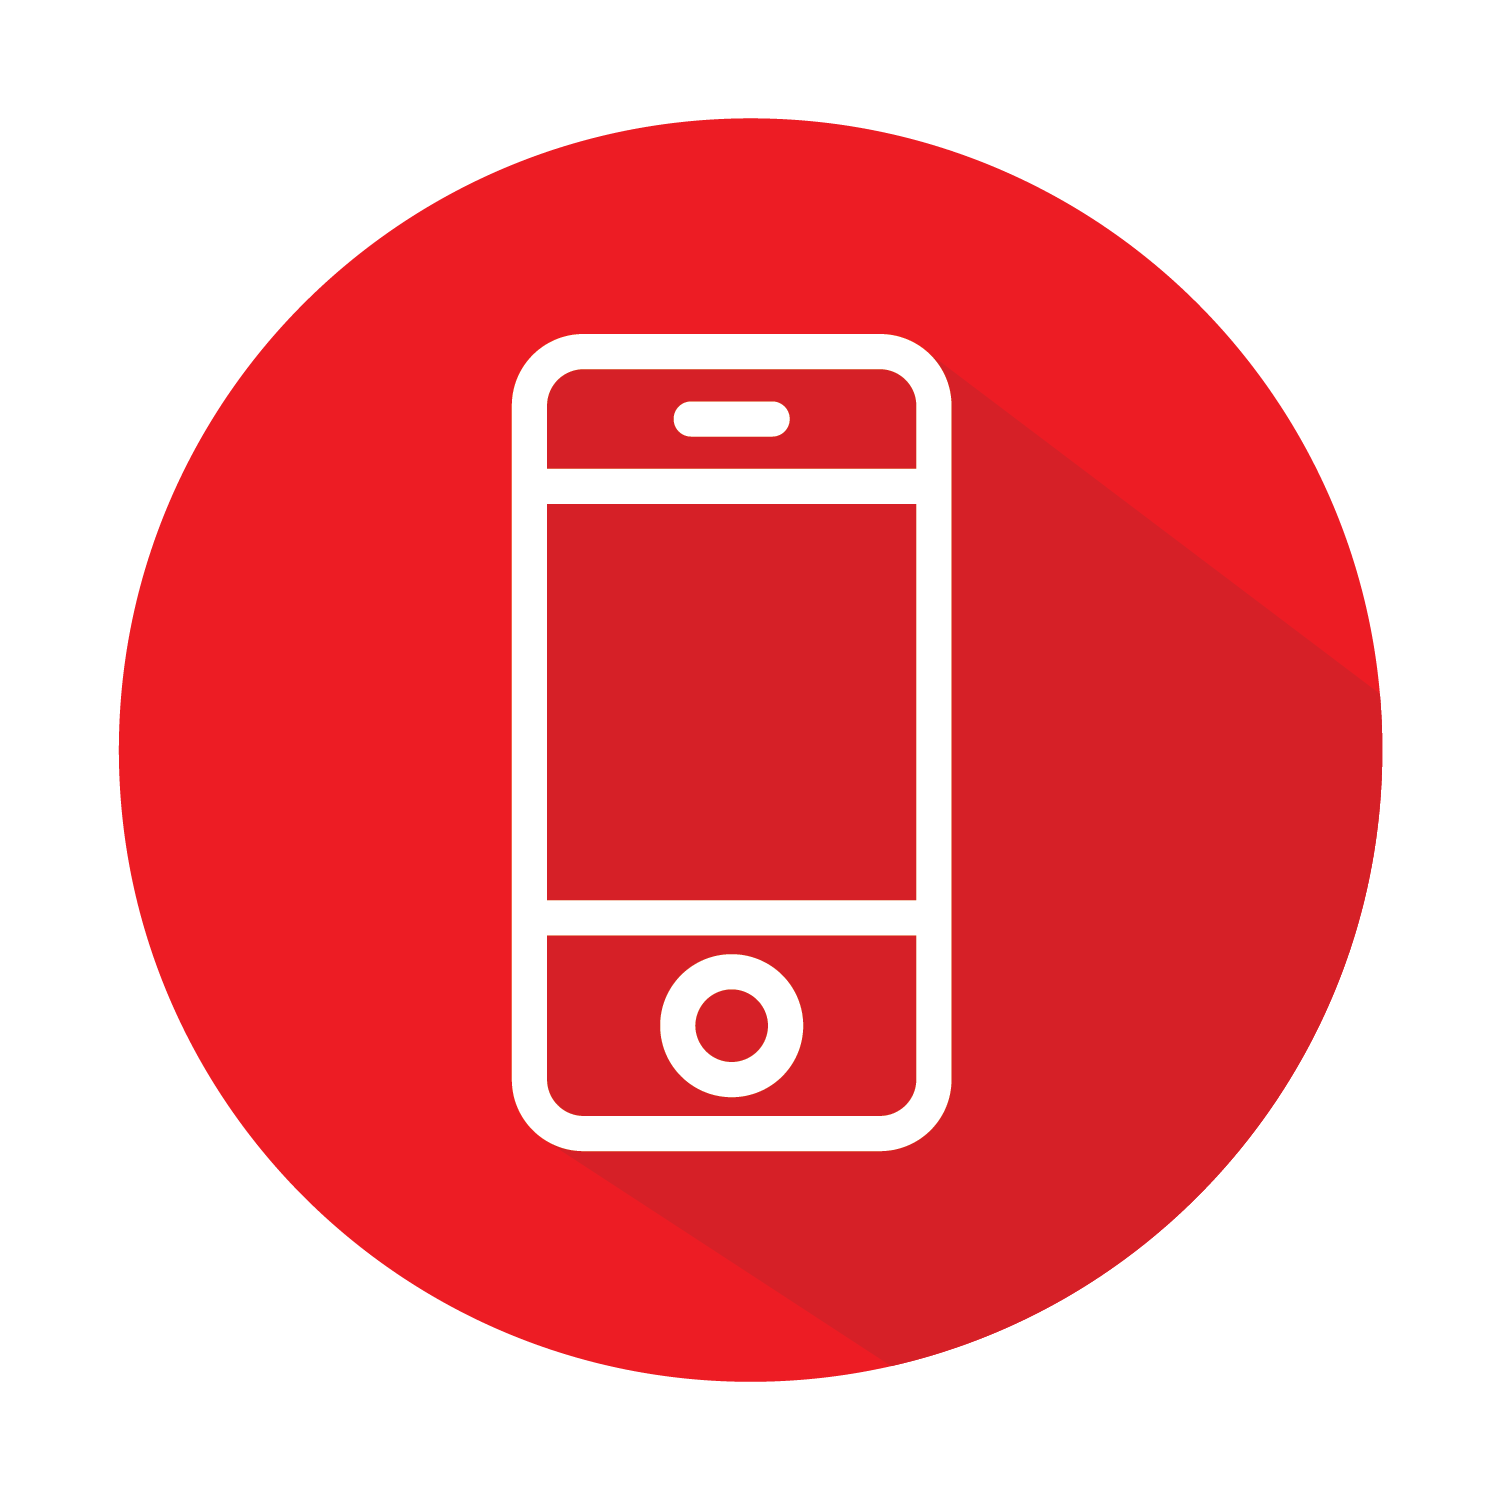 Mobile-Friendly Design   Policies and procedures are always at your fingertips, even when you're on the go.